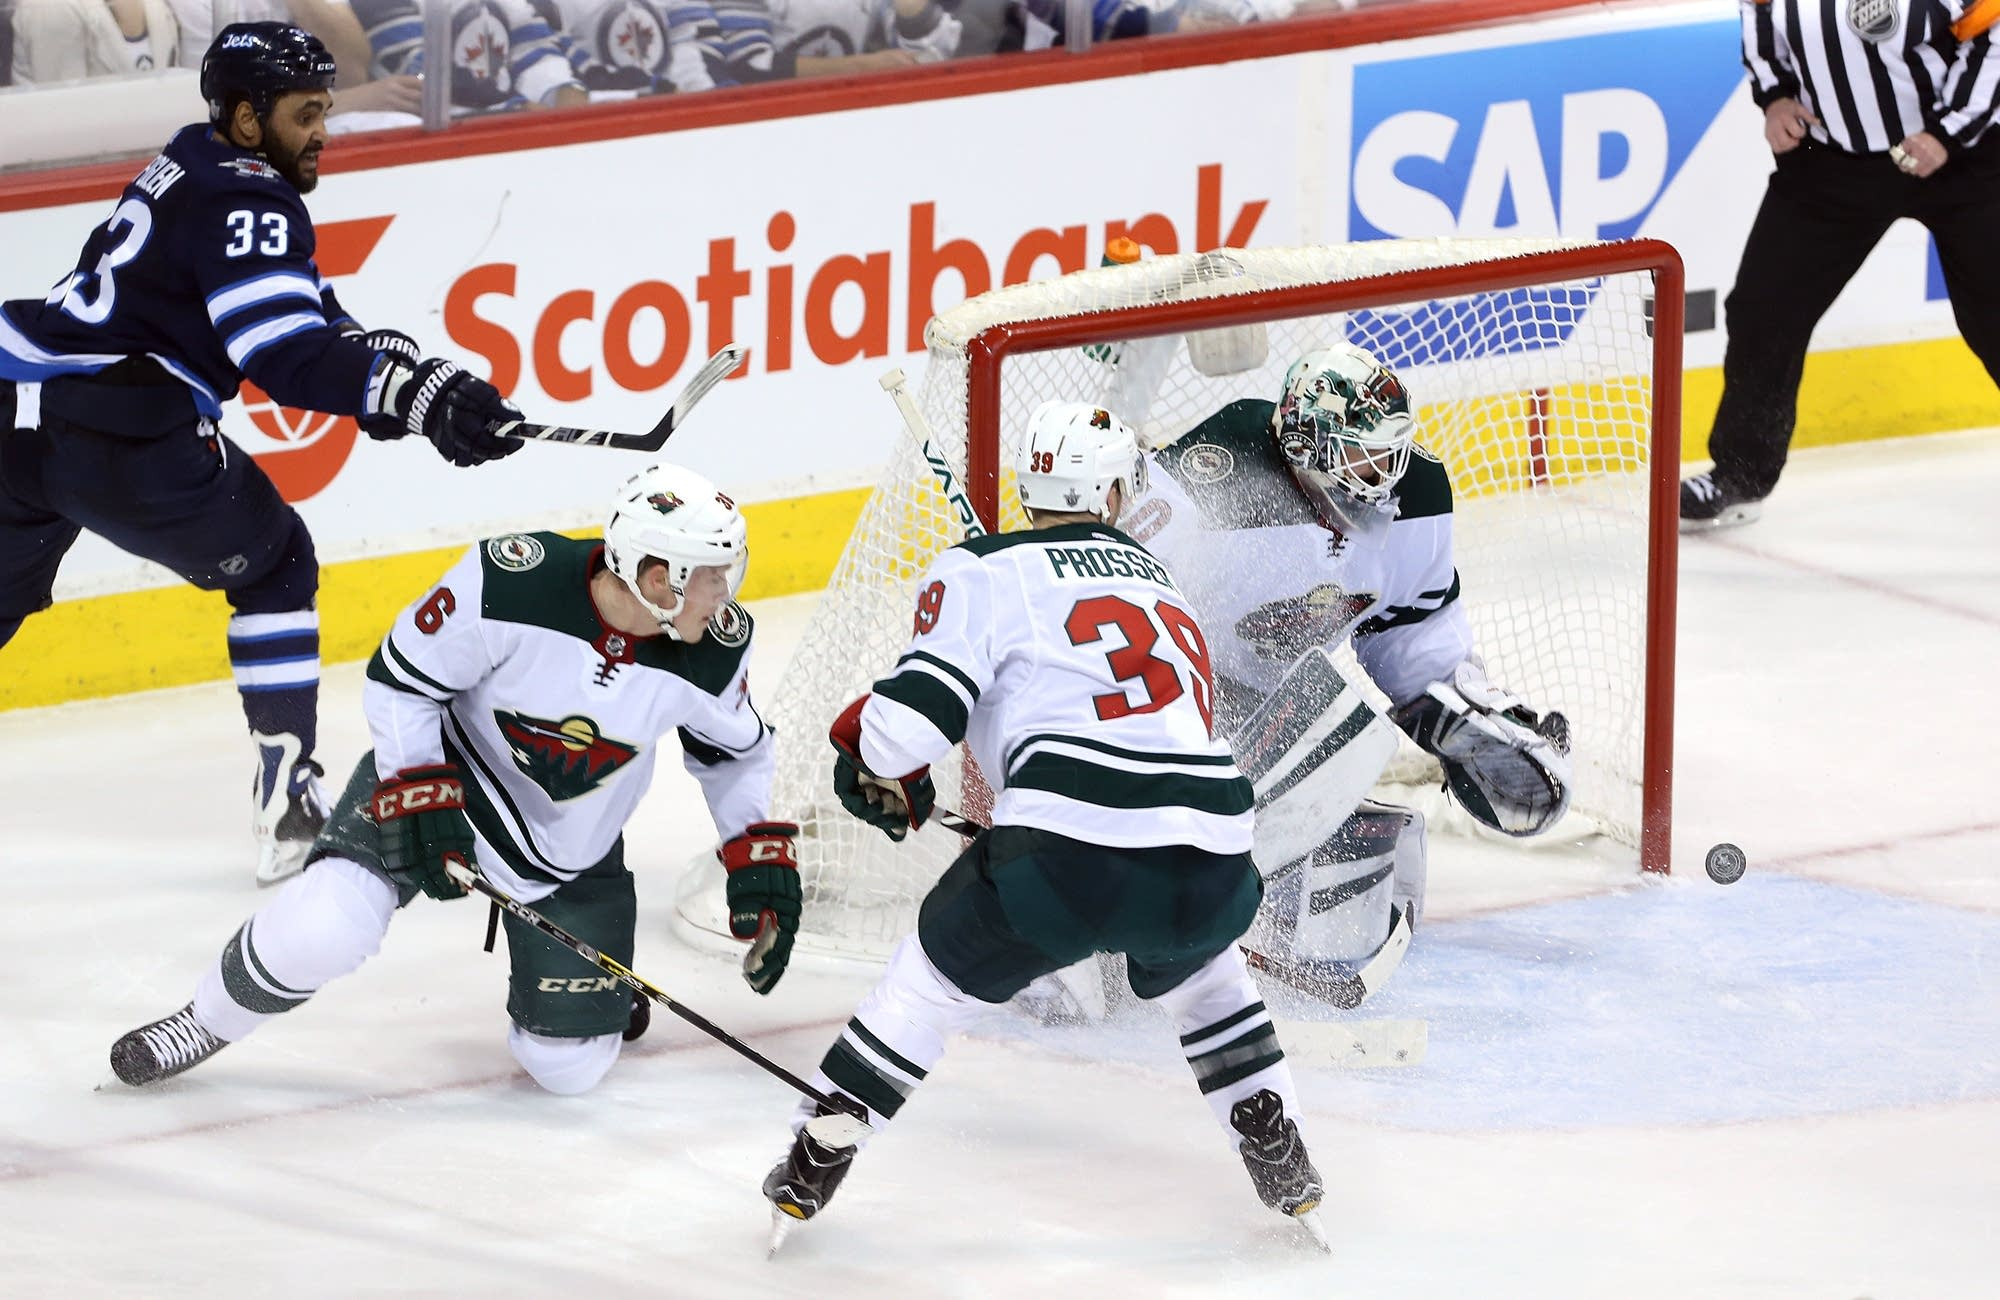 Minnesota Wild vs. Winnipeg Jets, 4-13